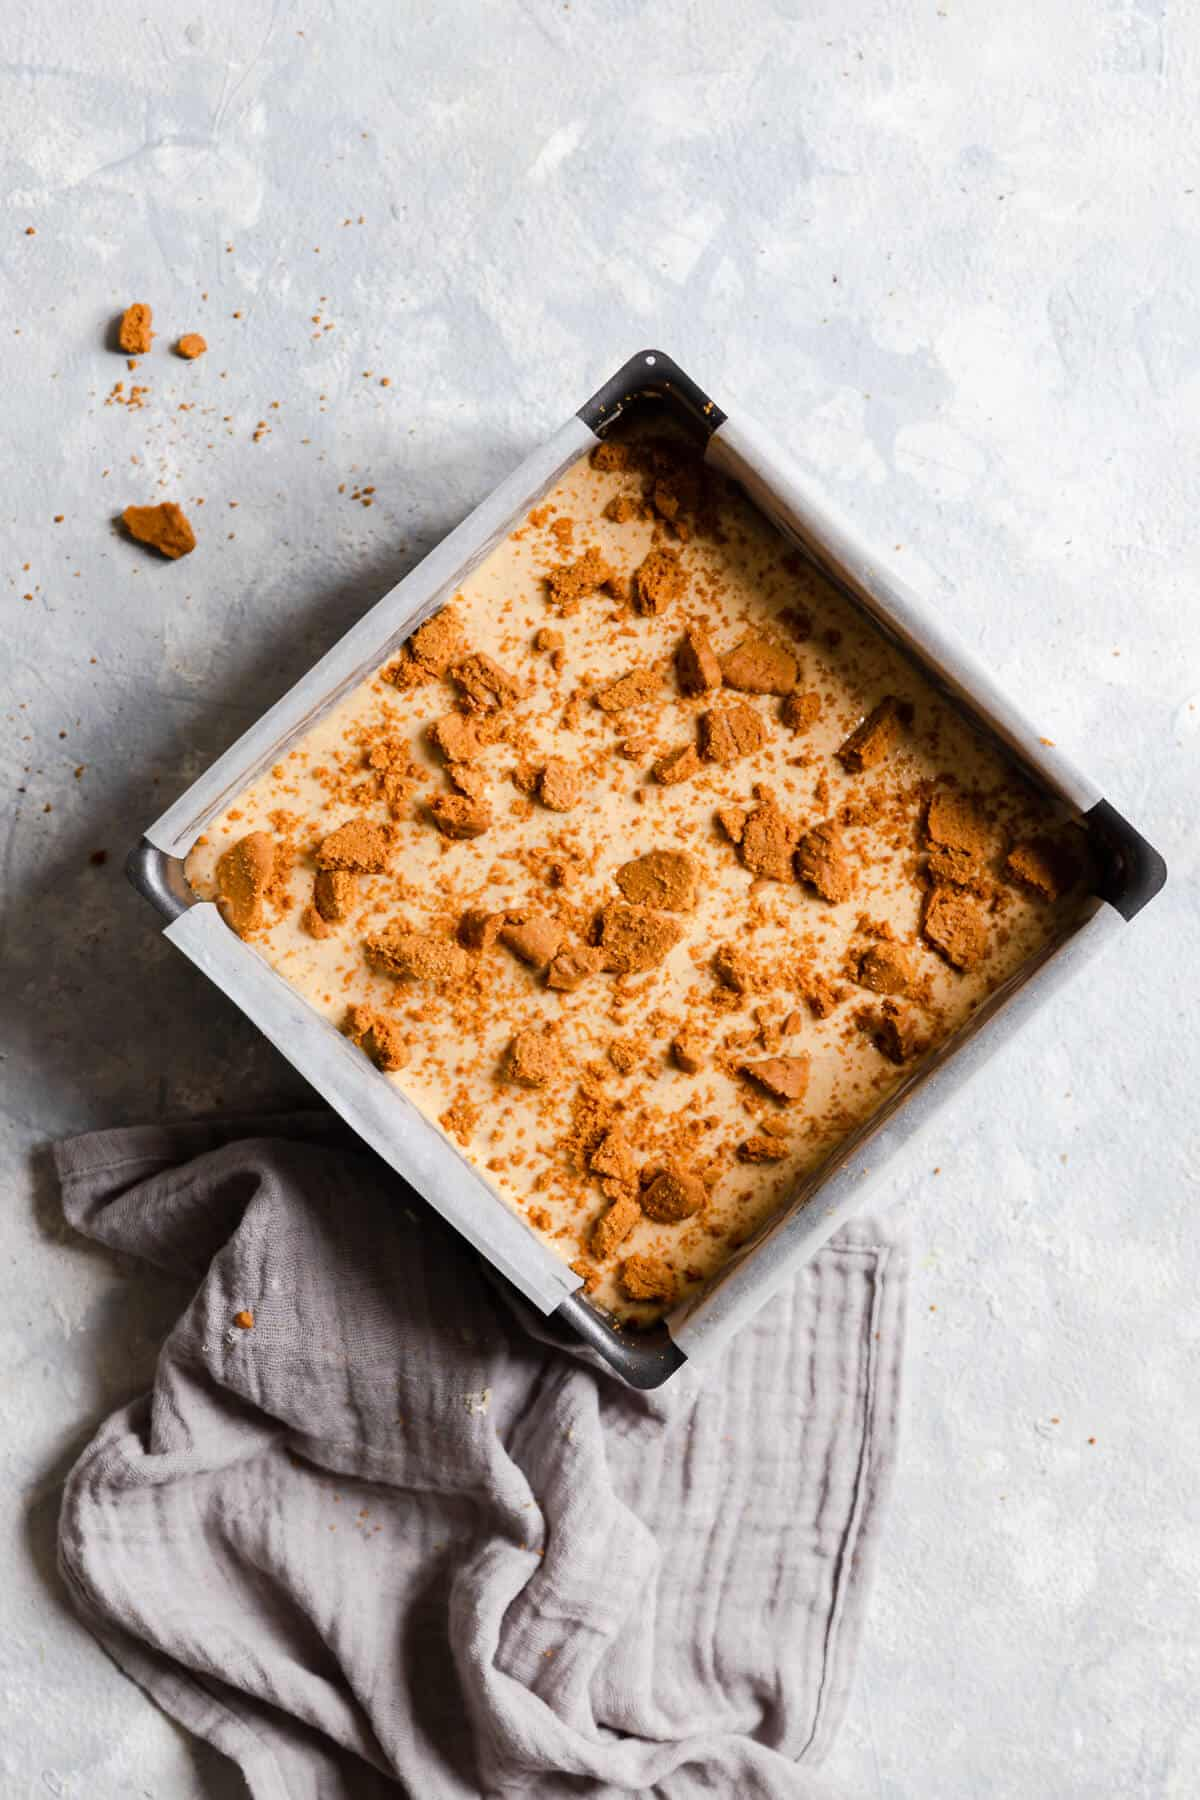 top view of cheesecake batter in a baking tin with crushed biscuits on top